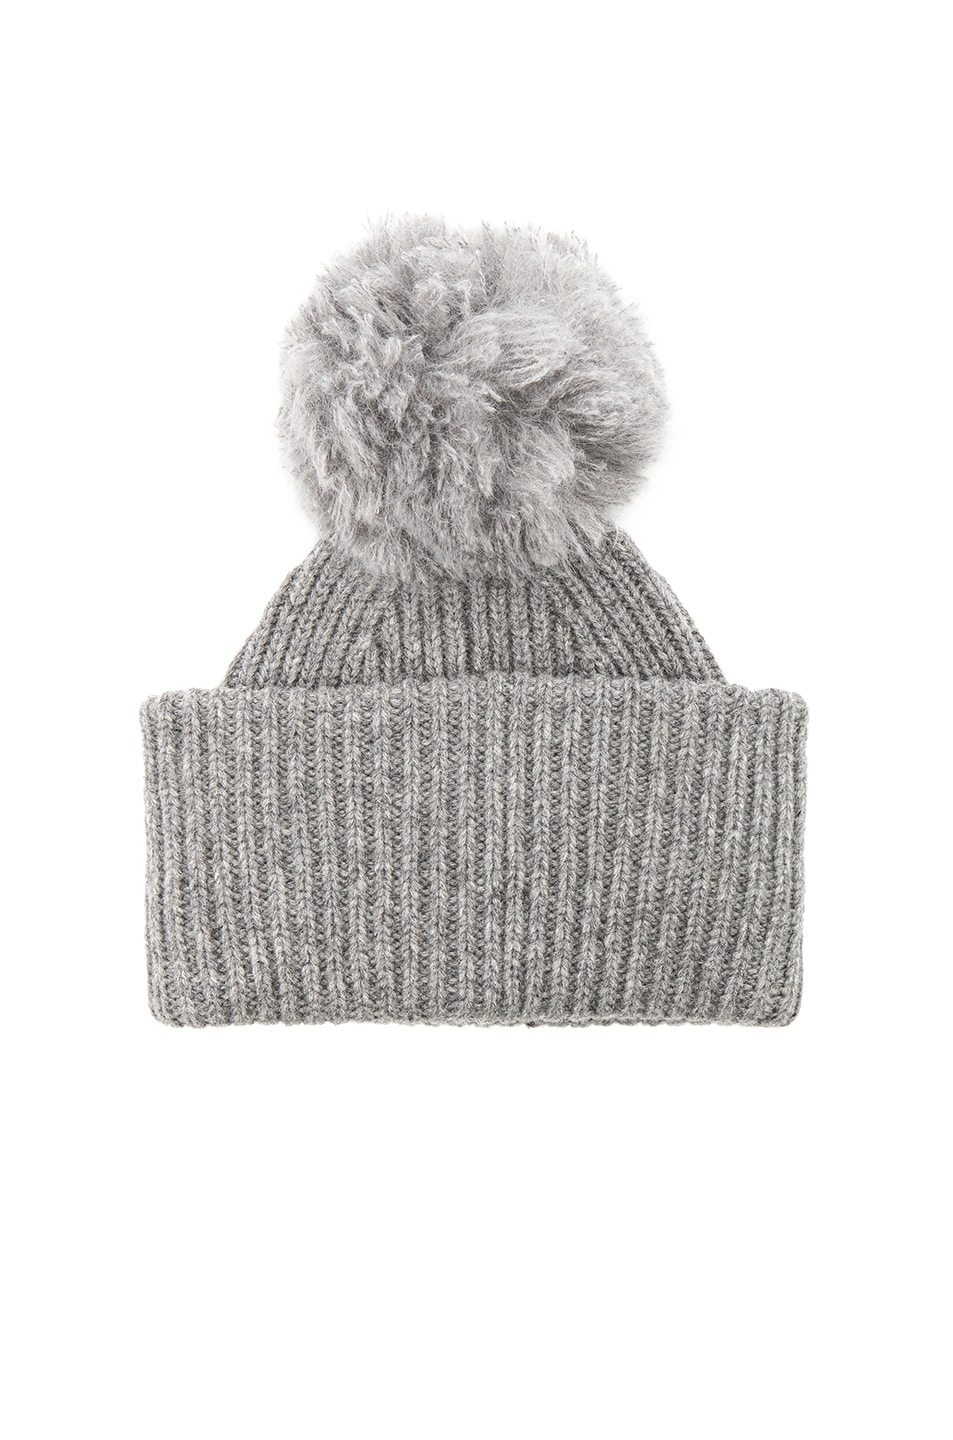 20a7a6ad878 Image 2 of Acne Studios Solia Beanie in Steel Grey